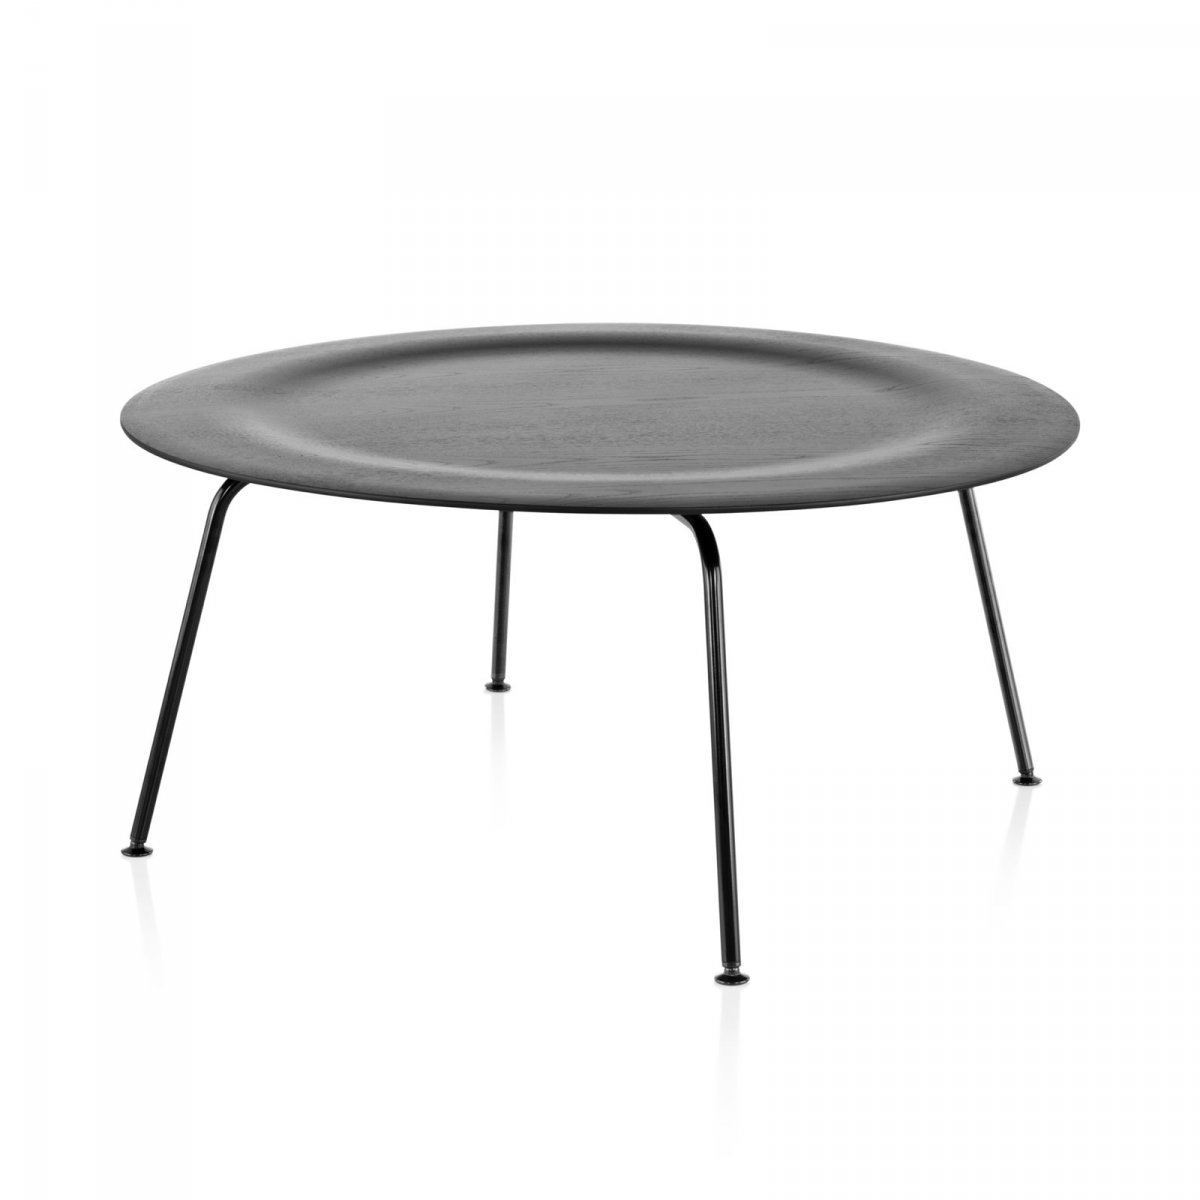 Eames Molded Plywood Coffee Table Metal Base, ebony top, black base.